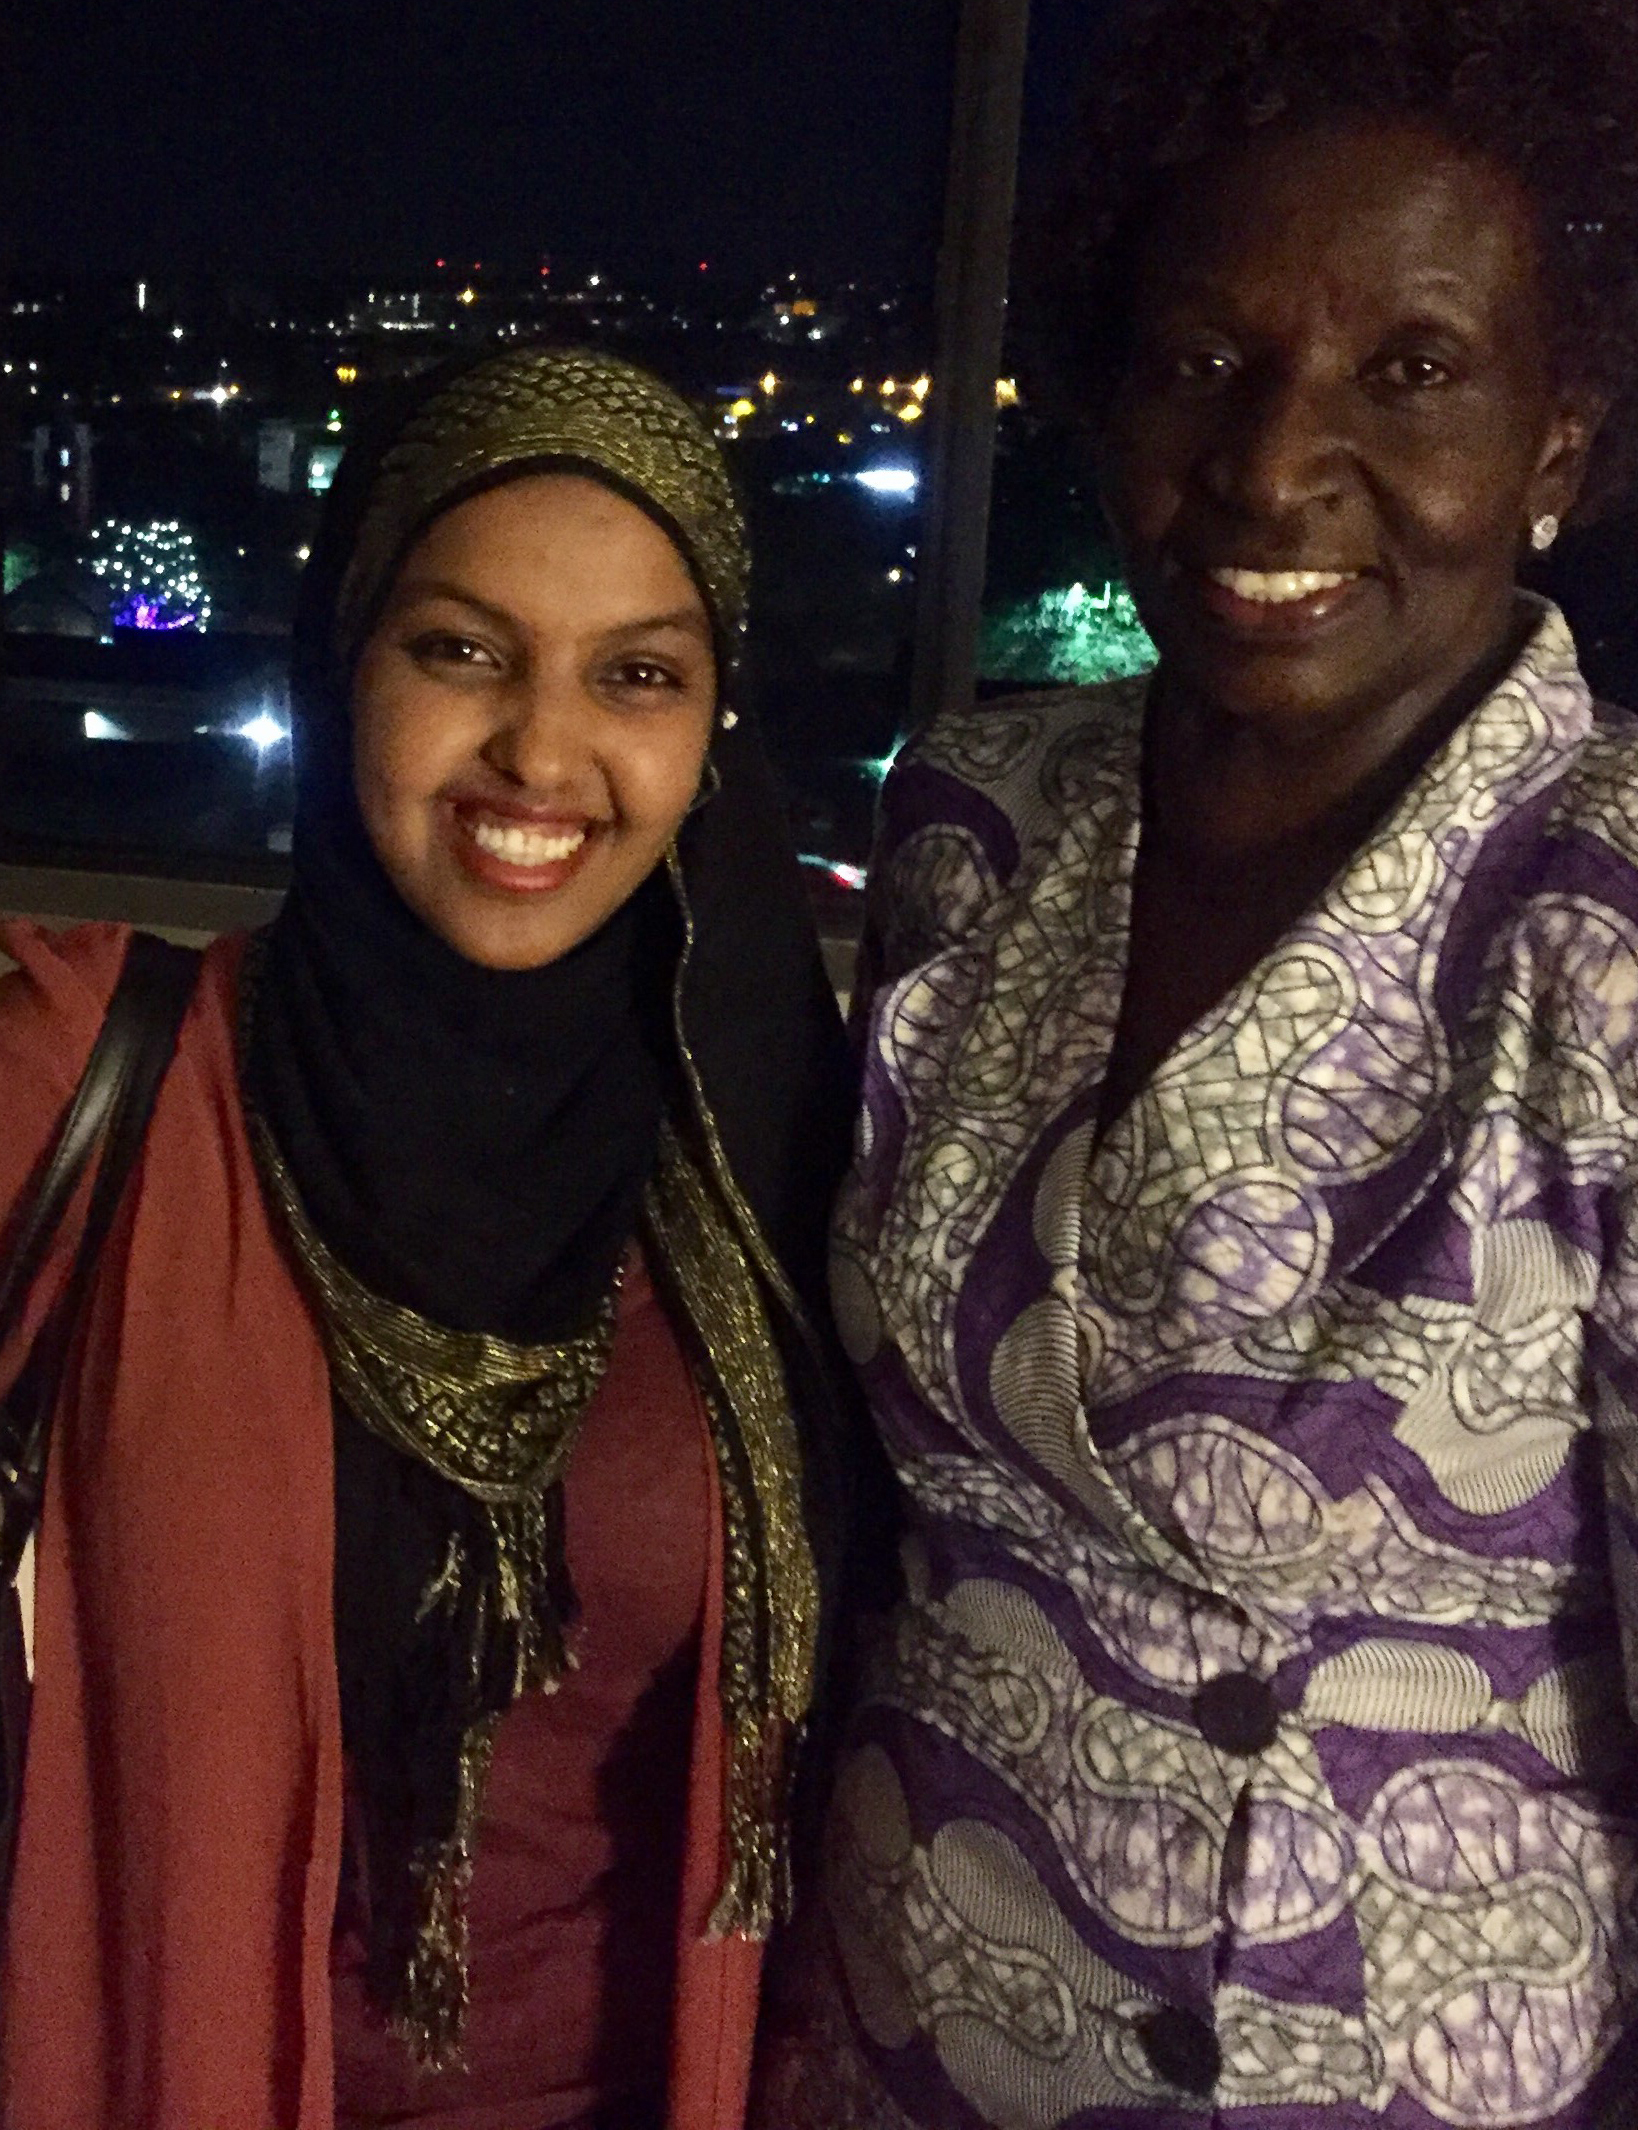 Dinner with friends of WHW in Boulder, Anisa Salat (One Earth Future Foundation) and Ruth Oching